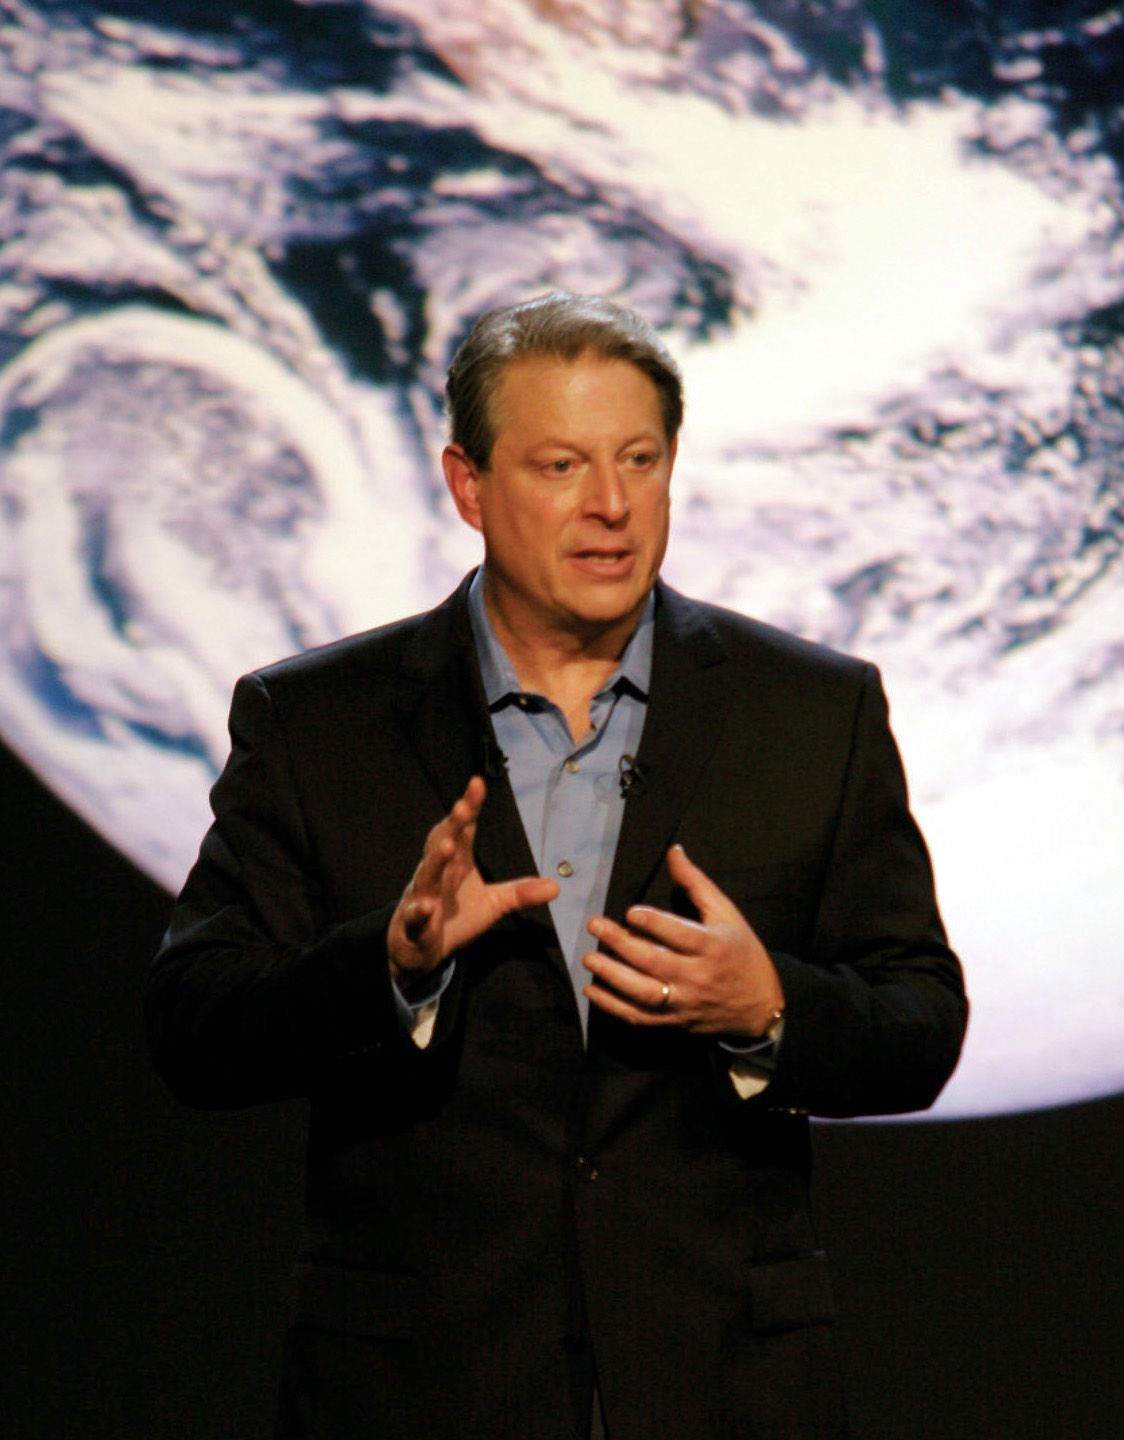 Al Gore To Receive Dan David Prize at Tel Aviv University Tomorrow